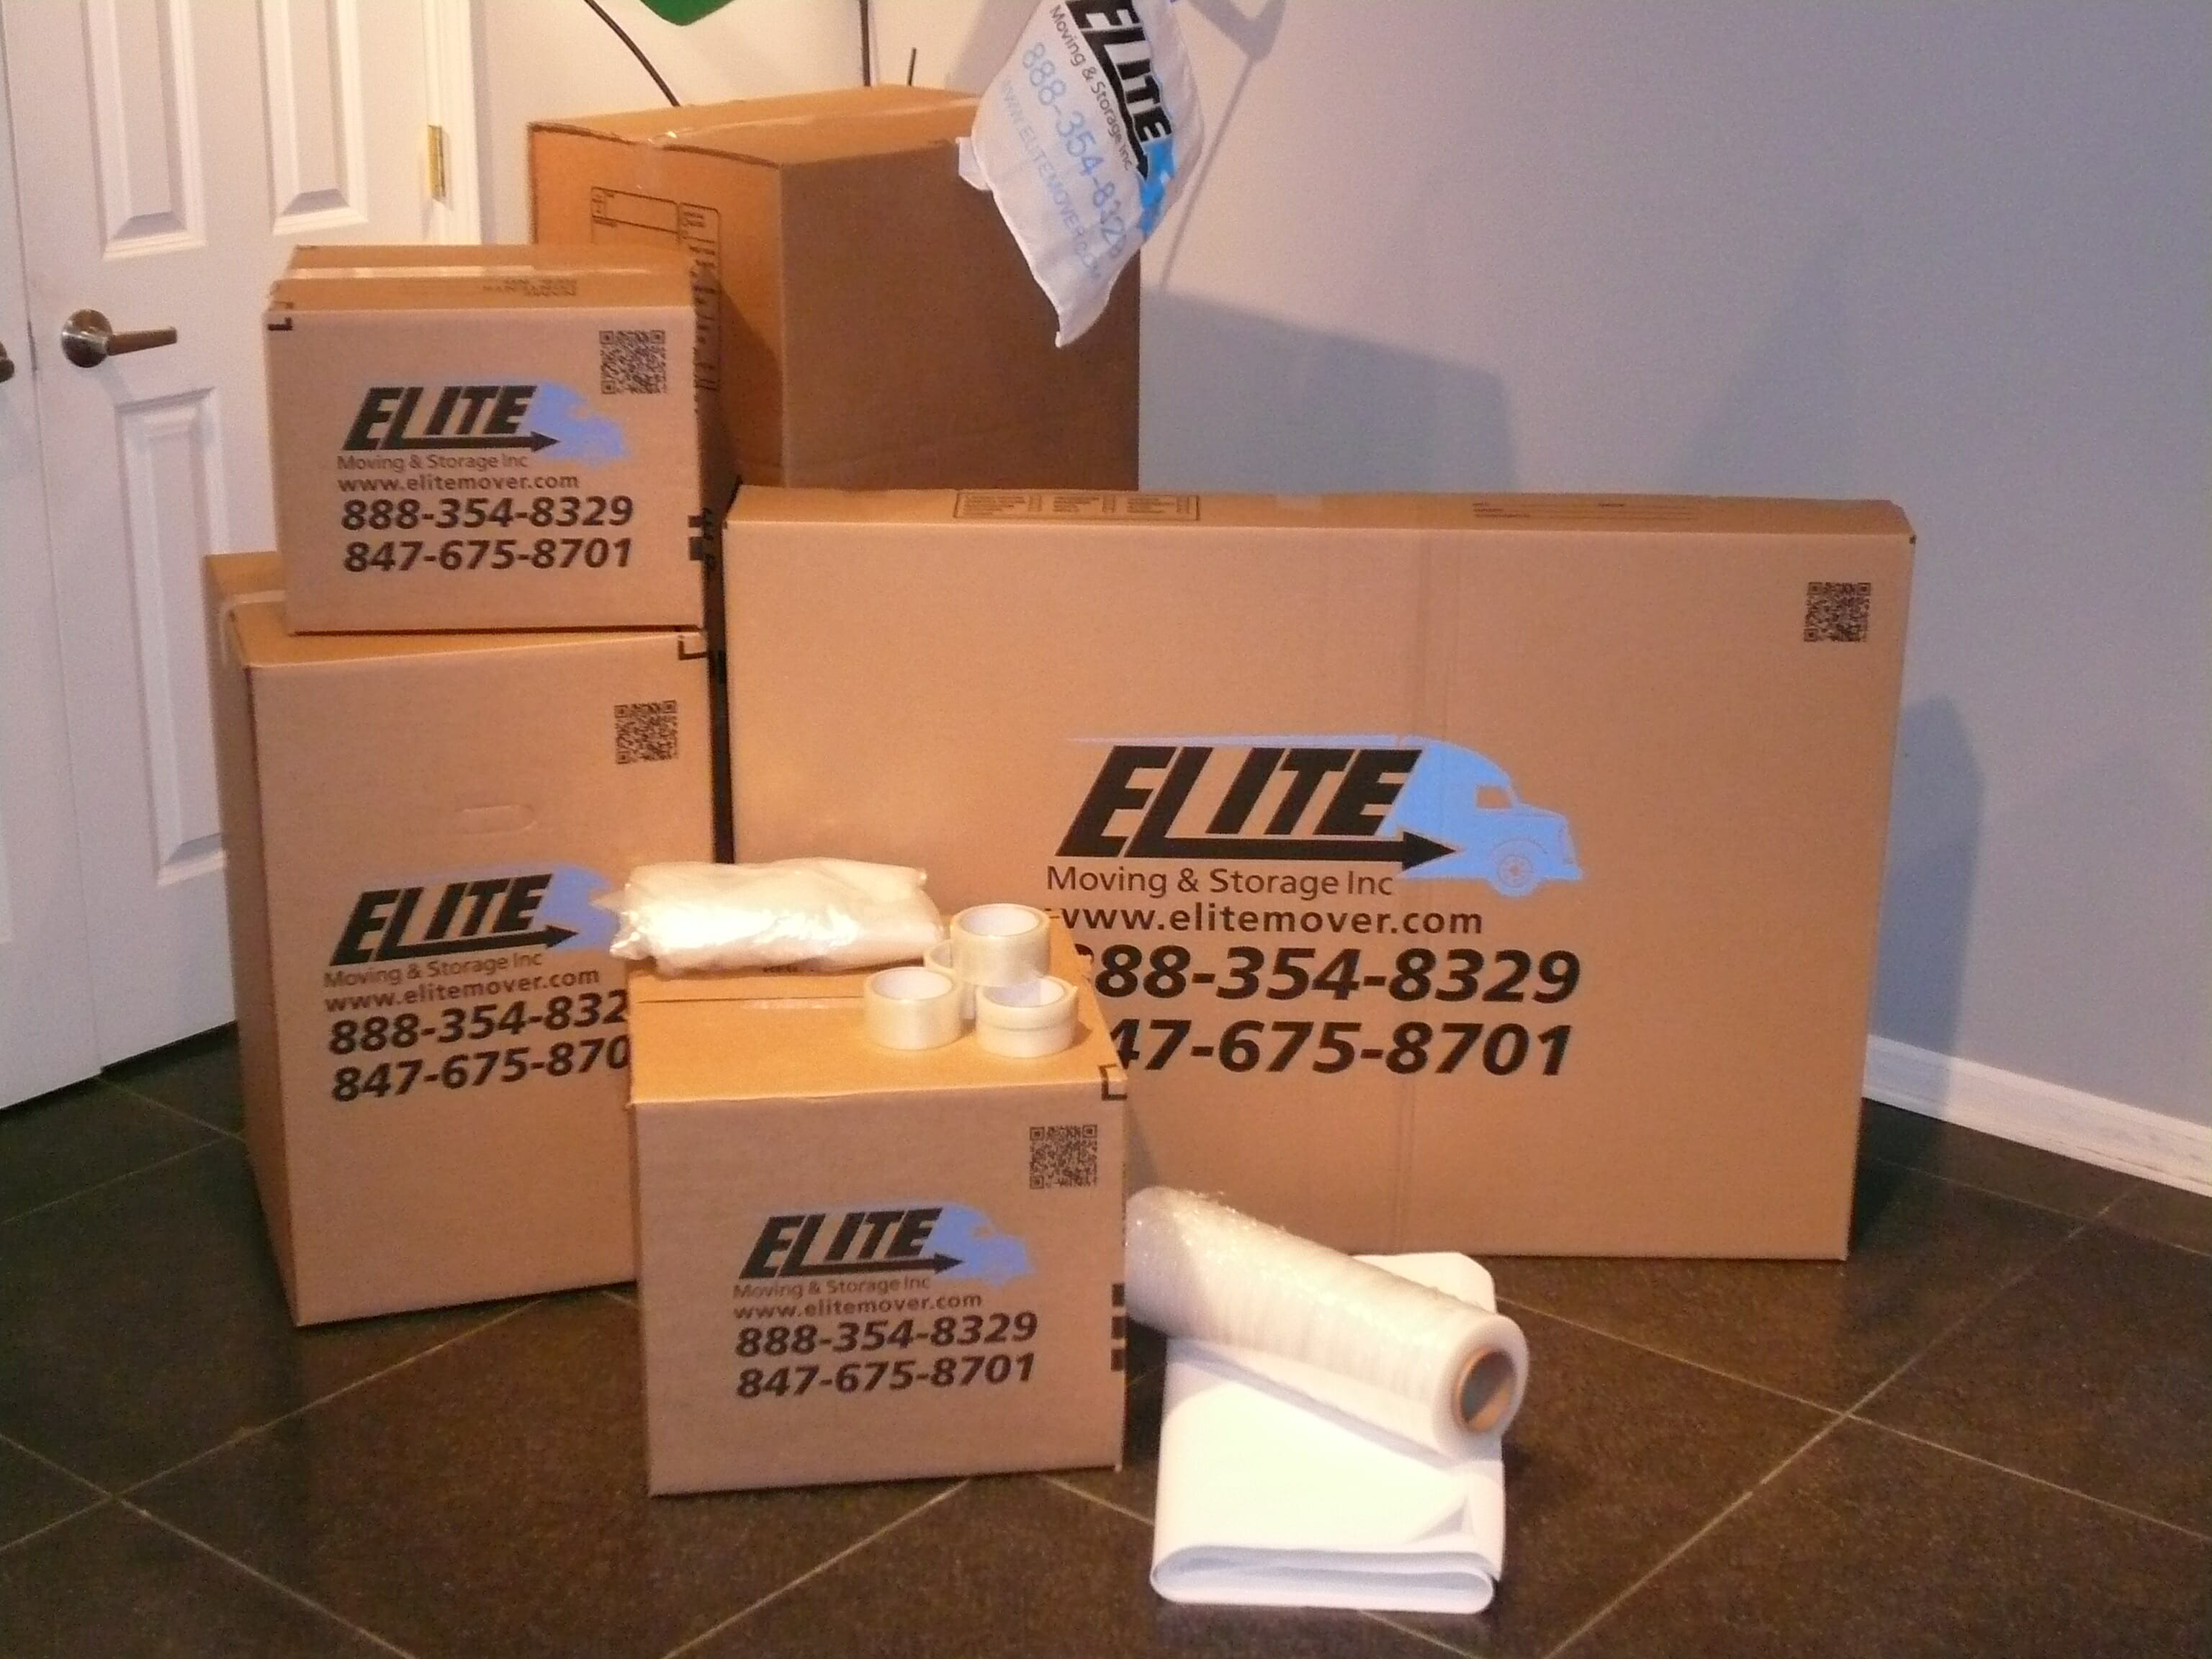 Elite's Packing Kits and Moving Supplies